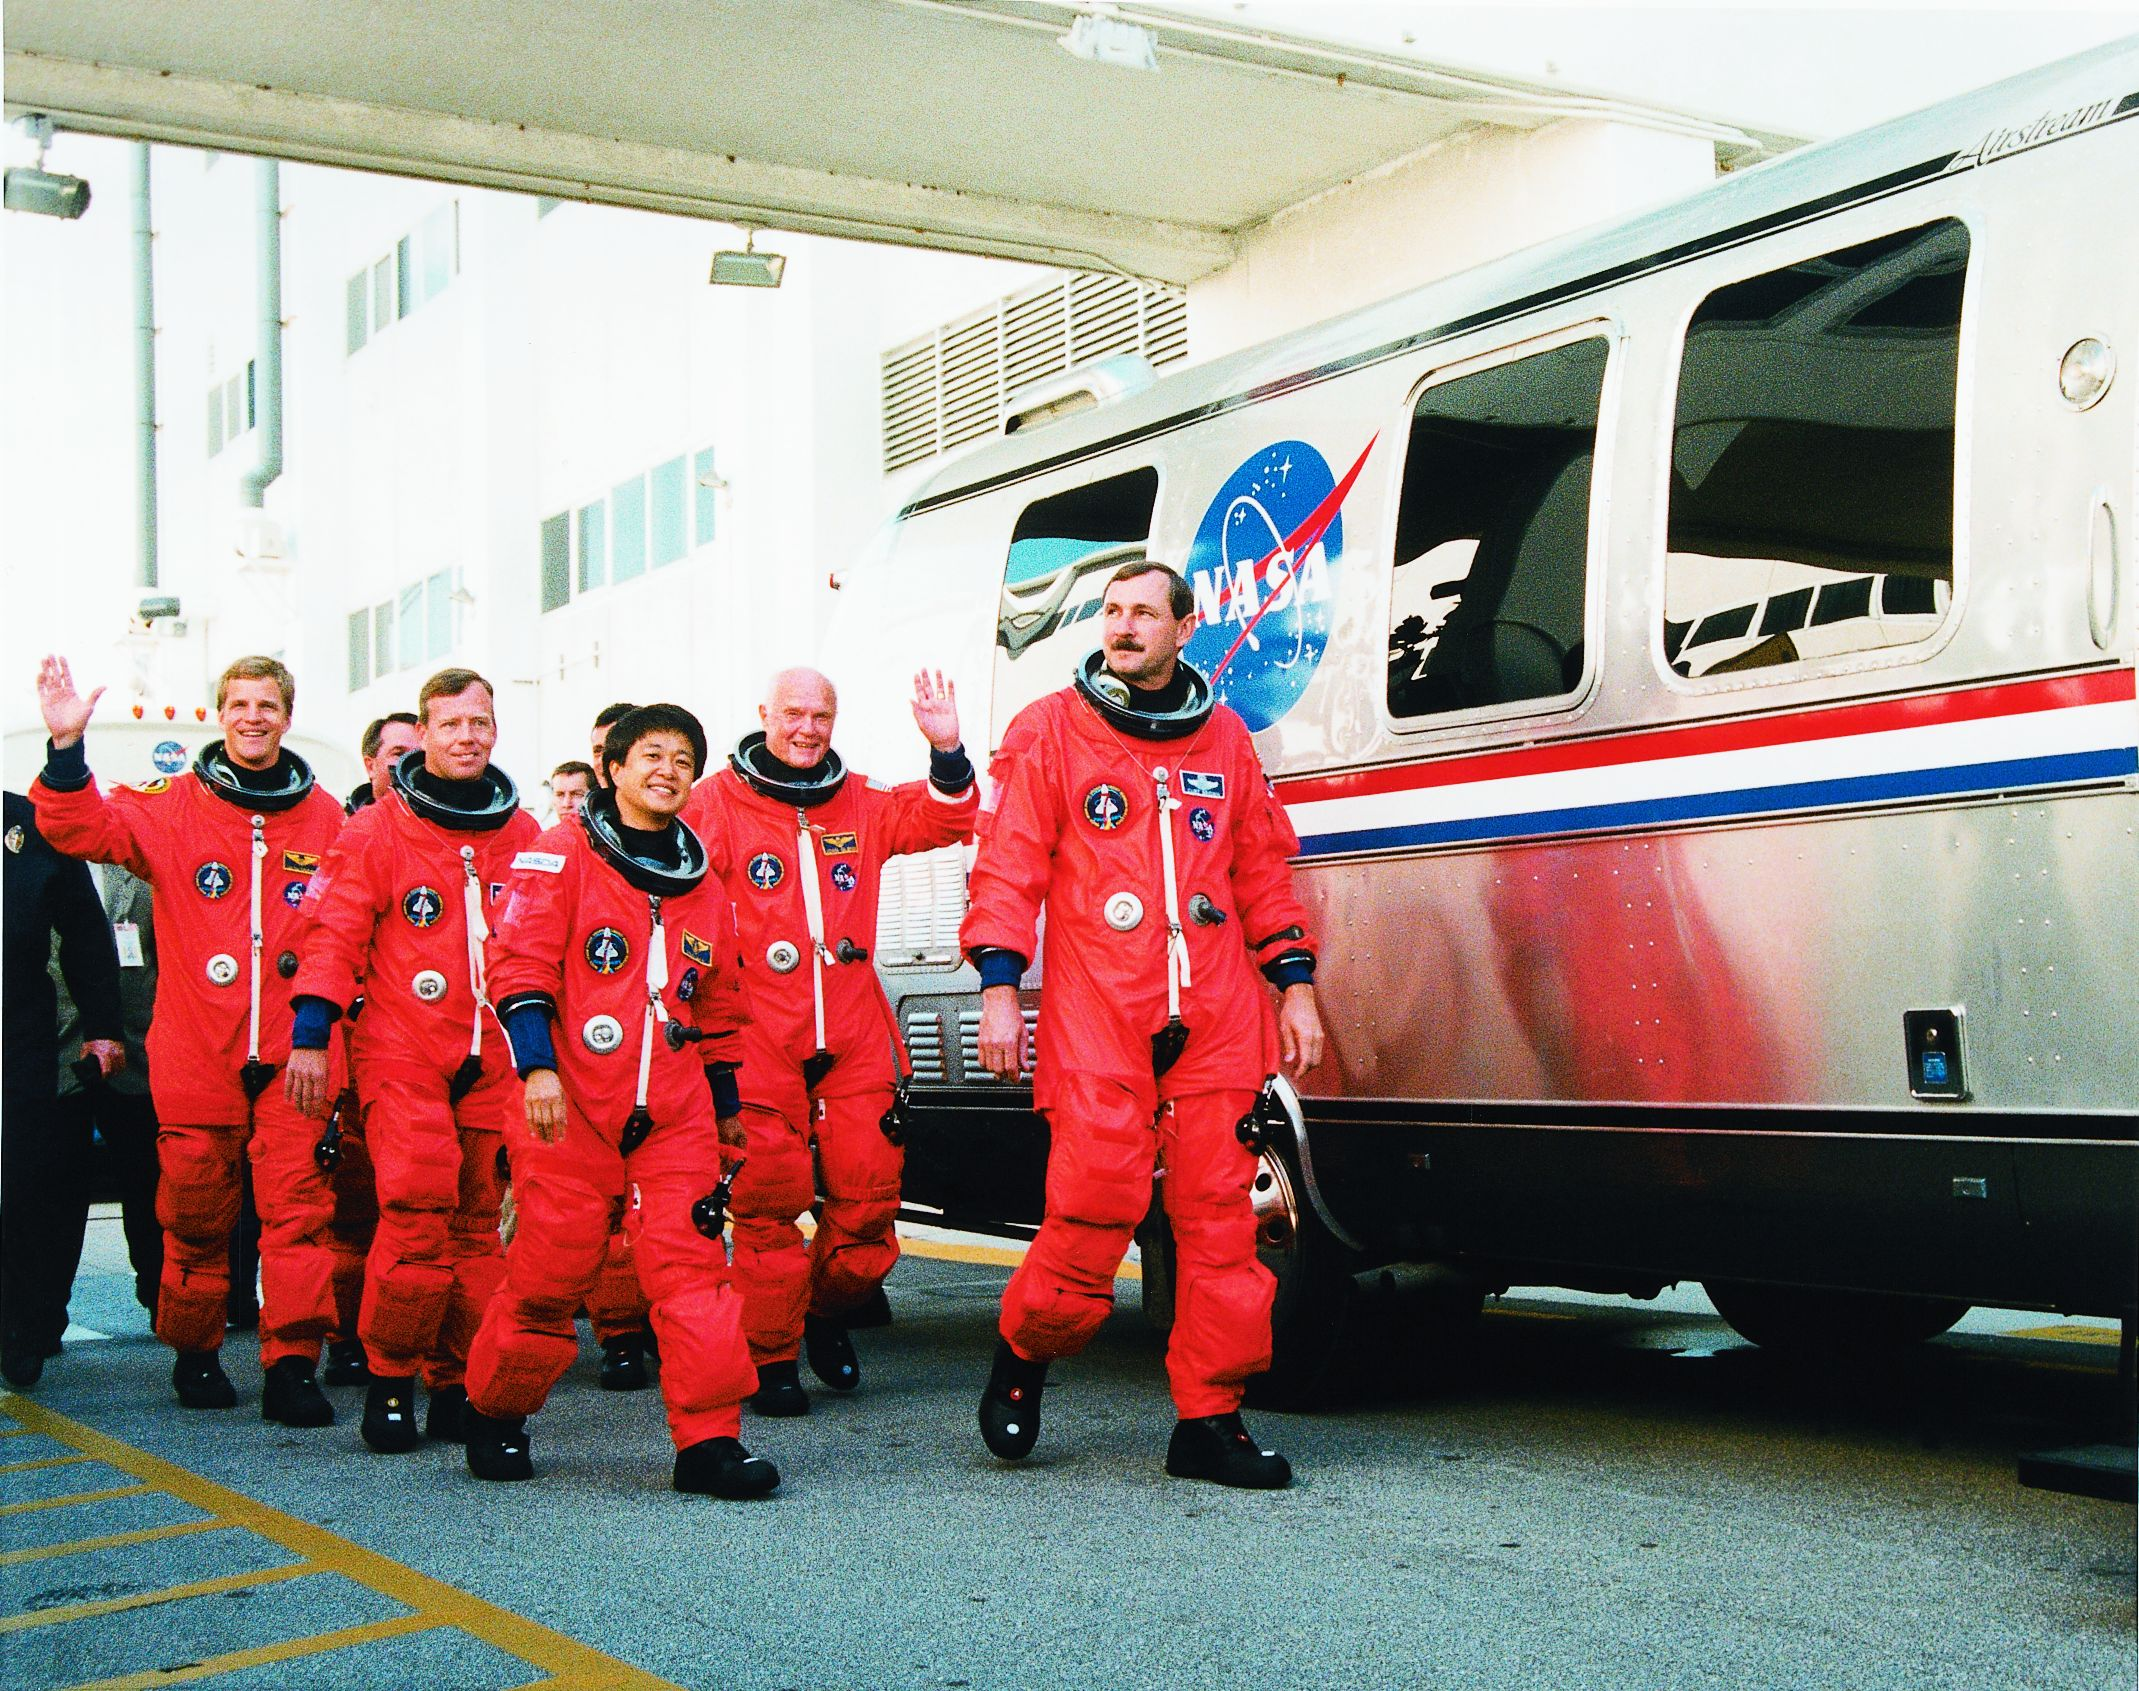 Astronauts and Astrovan NASA Photo